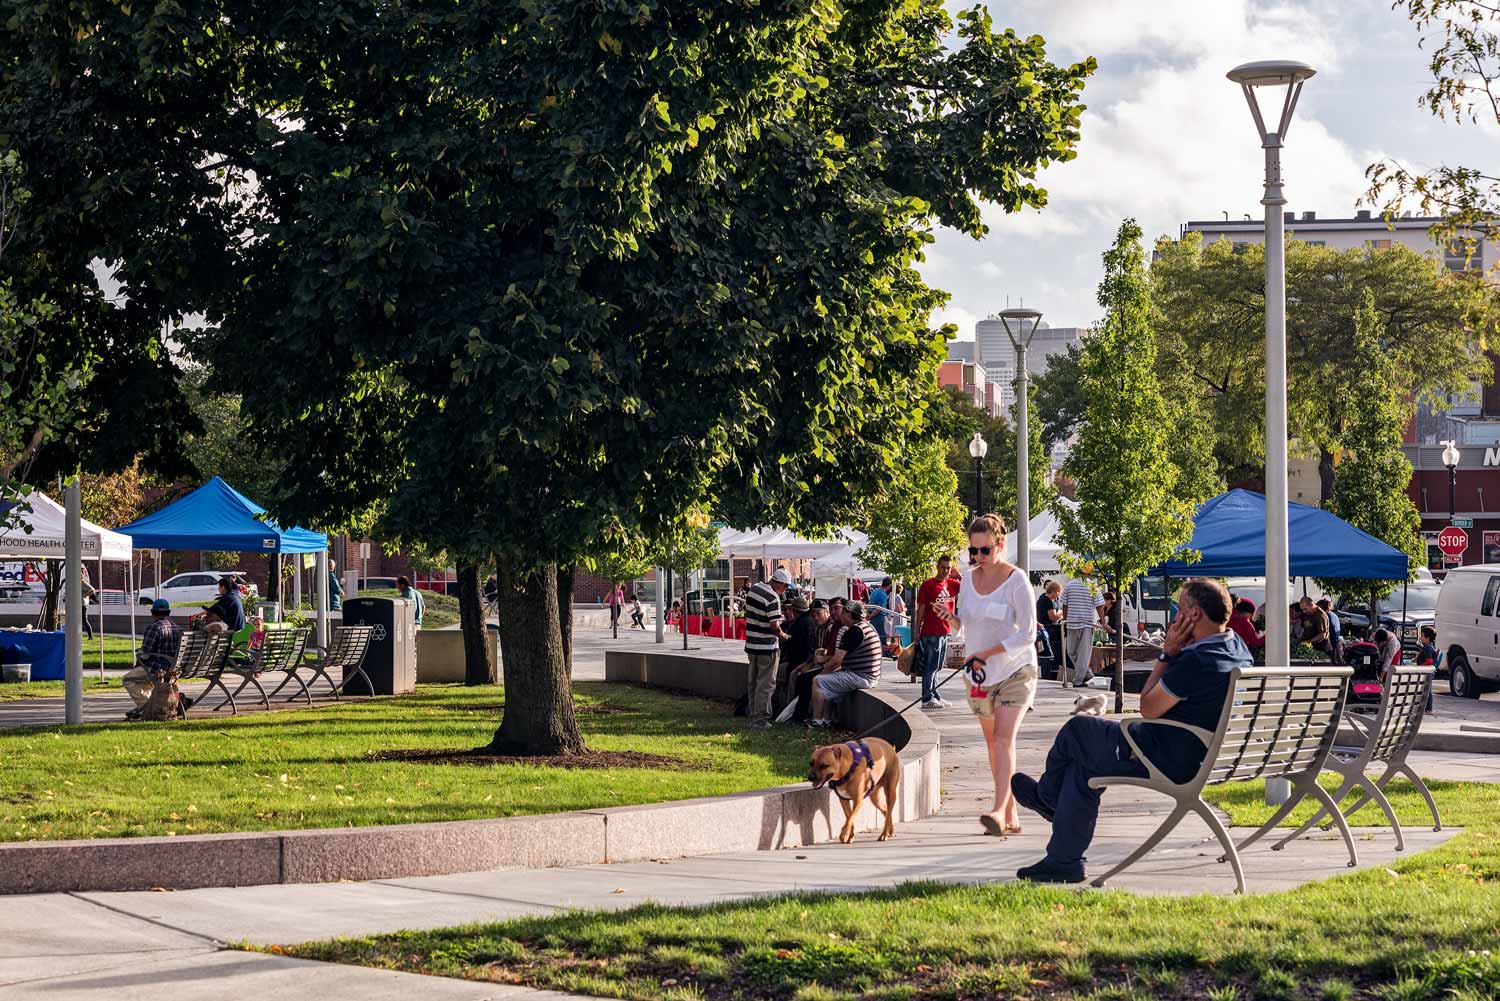 """- """"The design thoughtfully enhances public life in East Boston by creating a multi-functional park that both embraces history and looks to the future through vibrant social spaces and sustainable strategies."""" - BSLA Jury"""